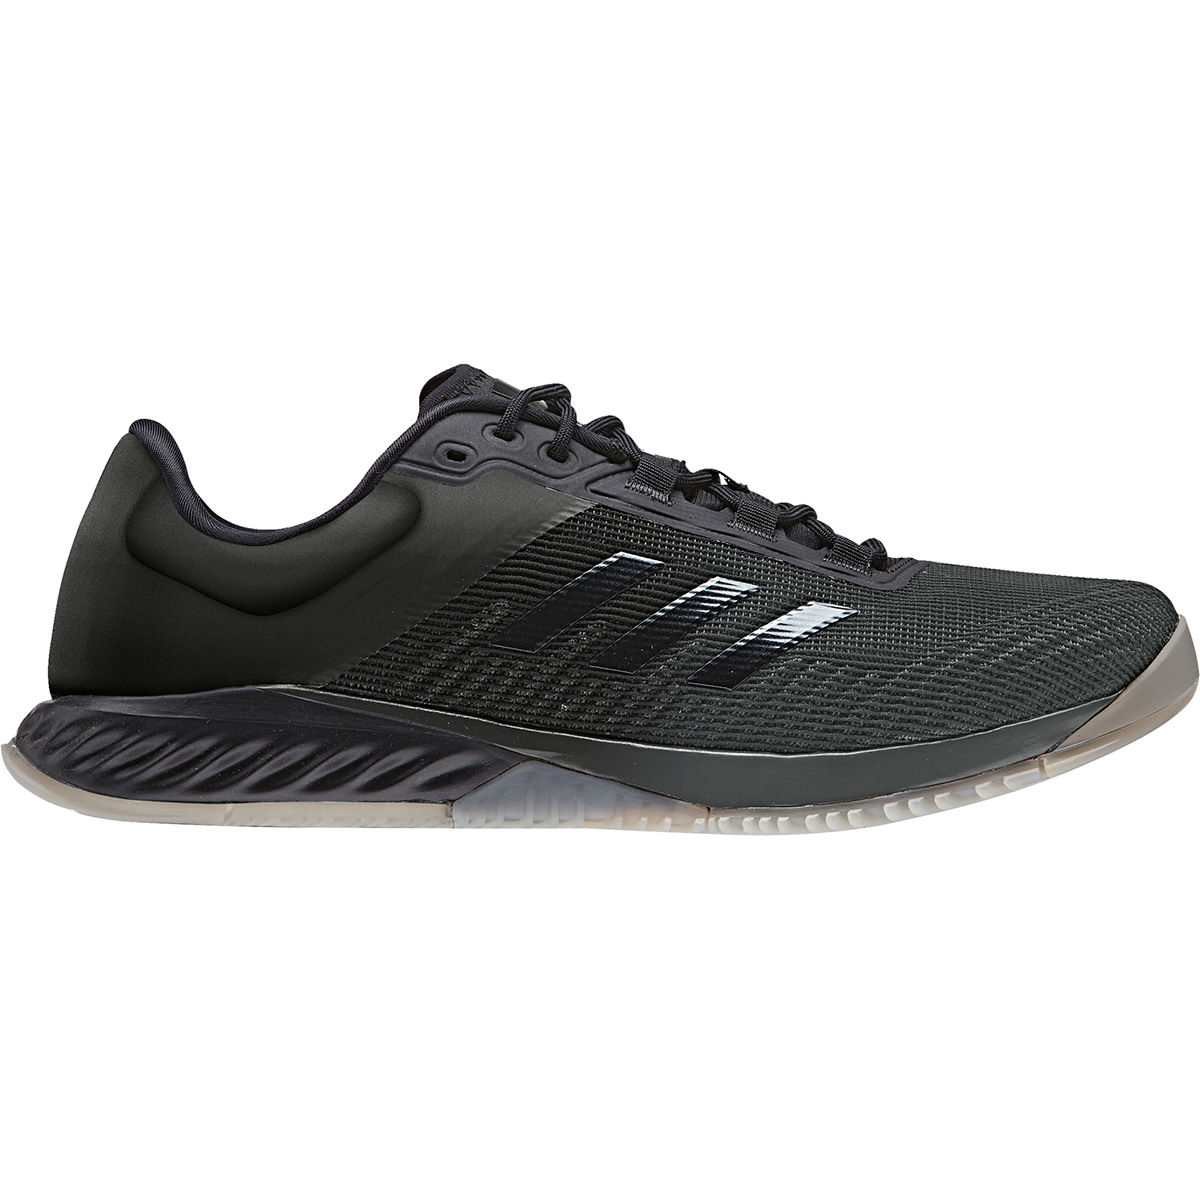 Chaussures adidas CrazyFast Trainer - 10 DGH SOLID GREY/CORE